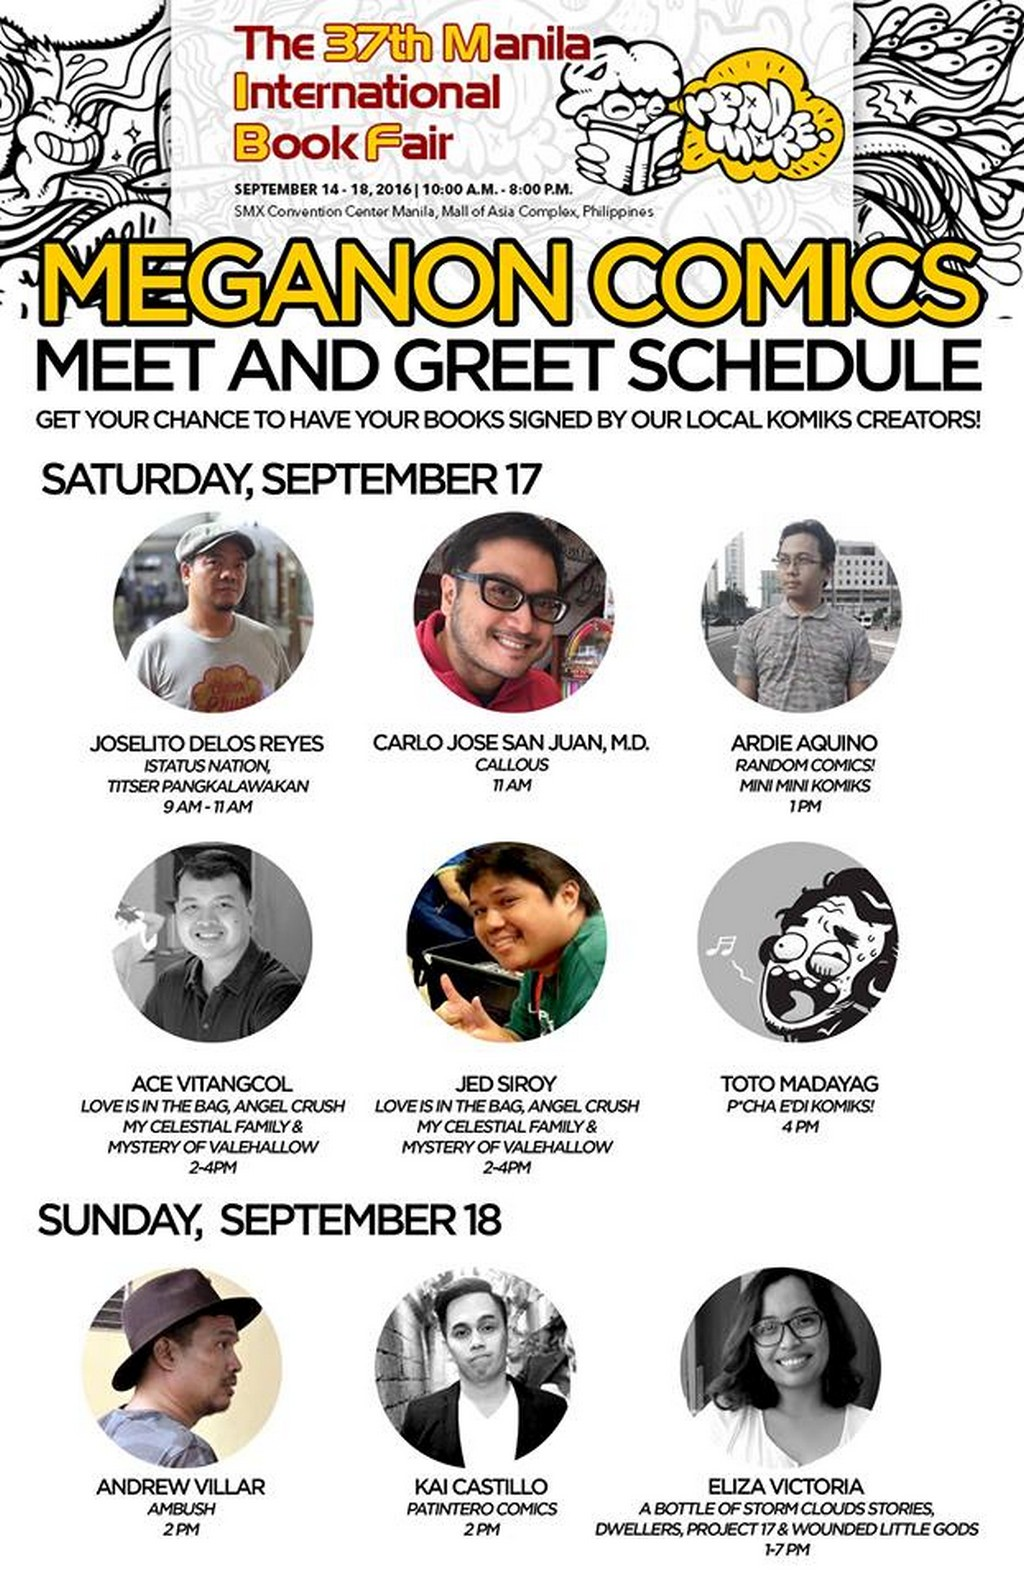 MIBF2016_meganon_comics_meet_and_greet